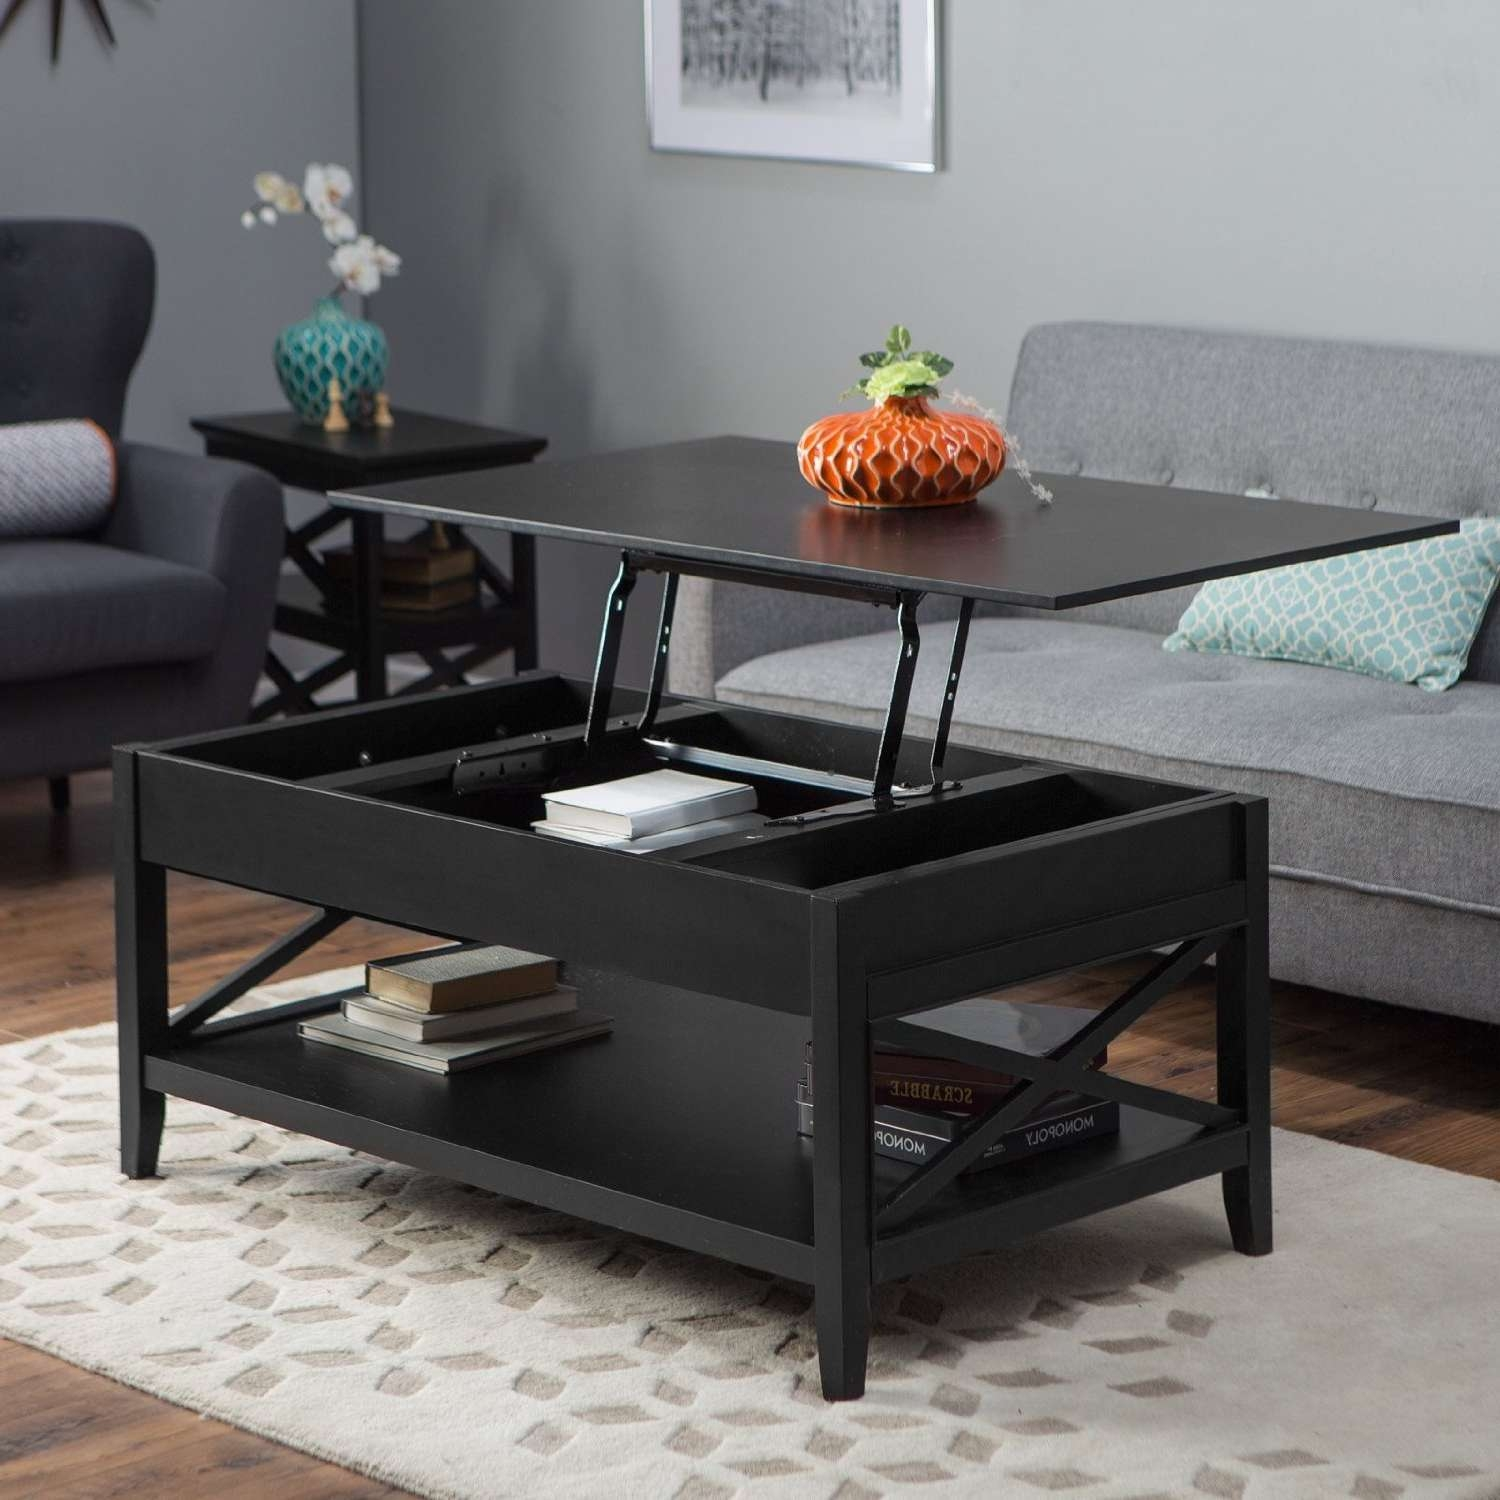 Famous Coffee Tables With Raisable Top Intended For Coffee Tables : Coffee Table With Storage And Lift Top Raisable (View 14 of 20)